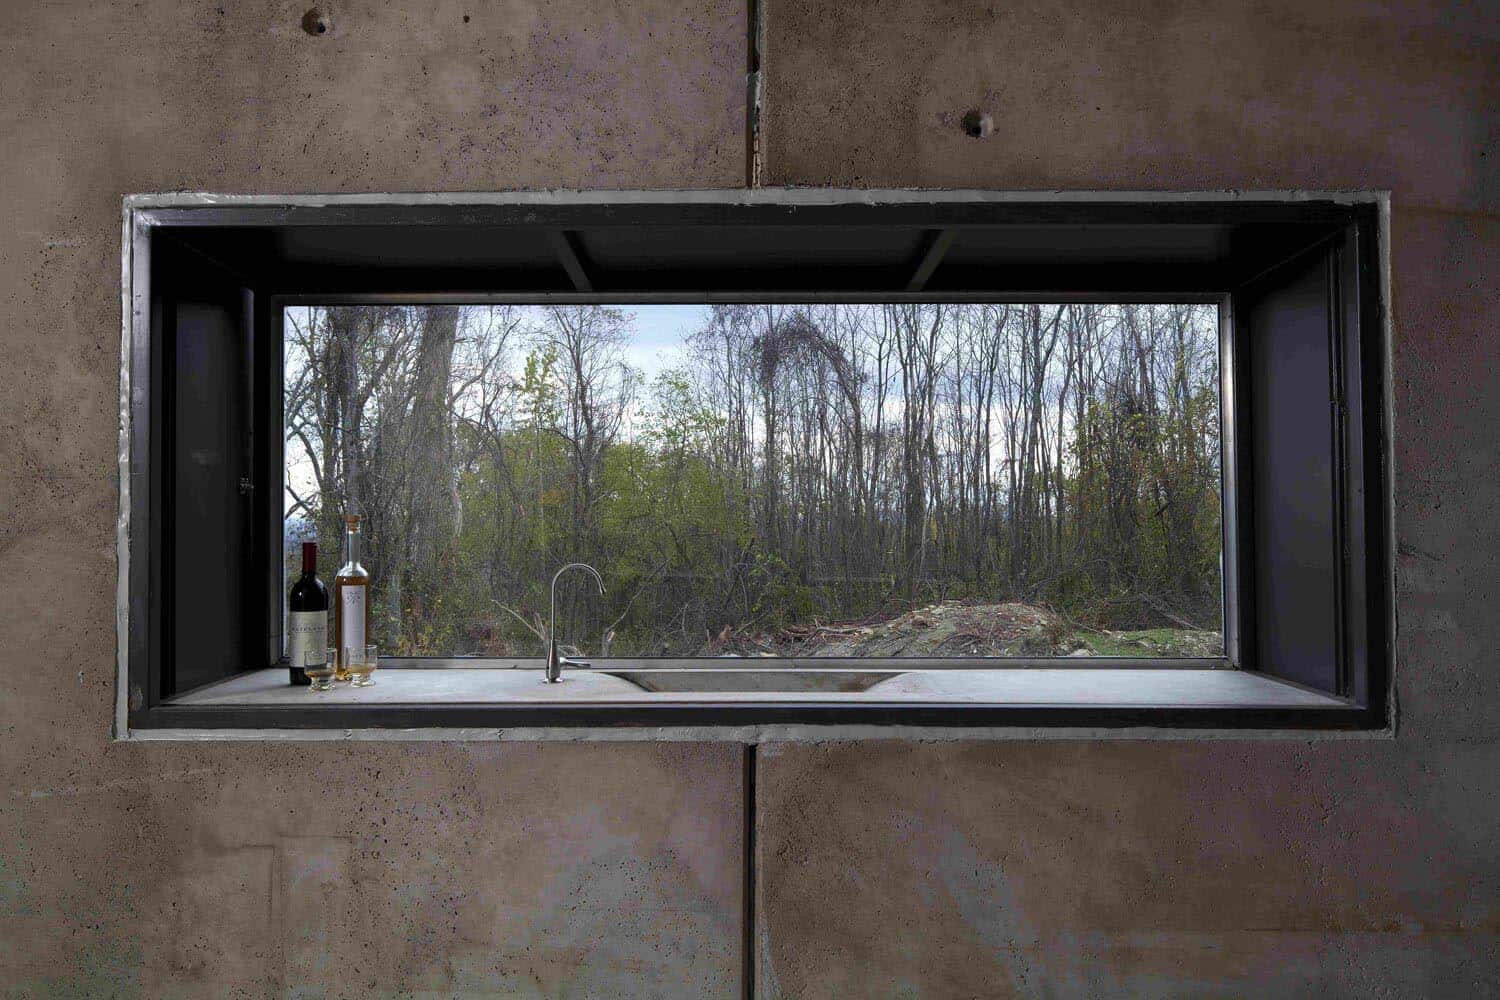 concrete-cabin-window-sink